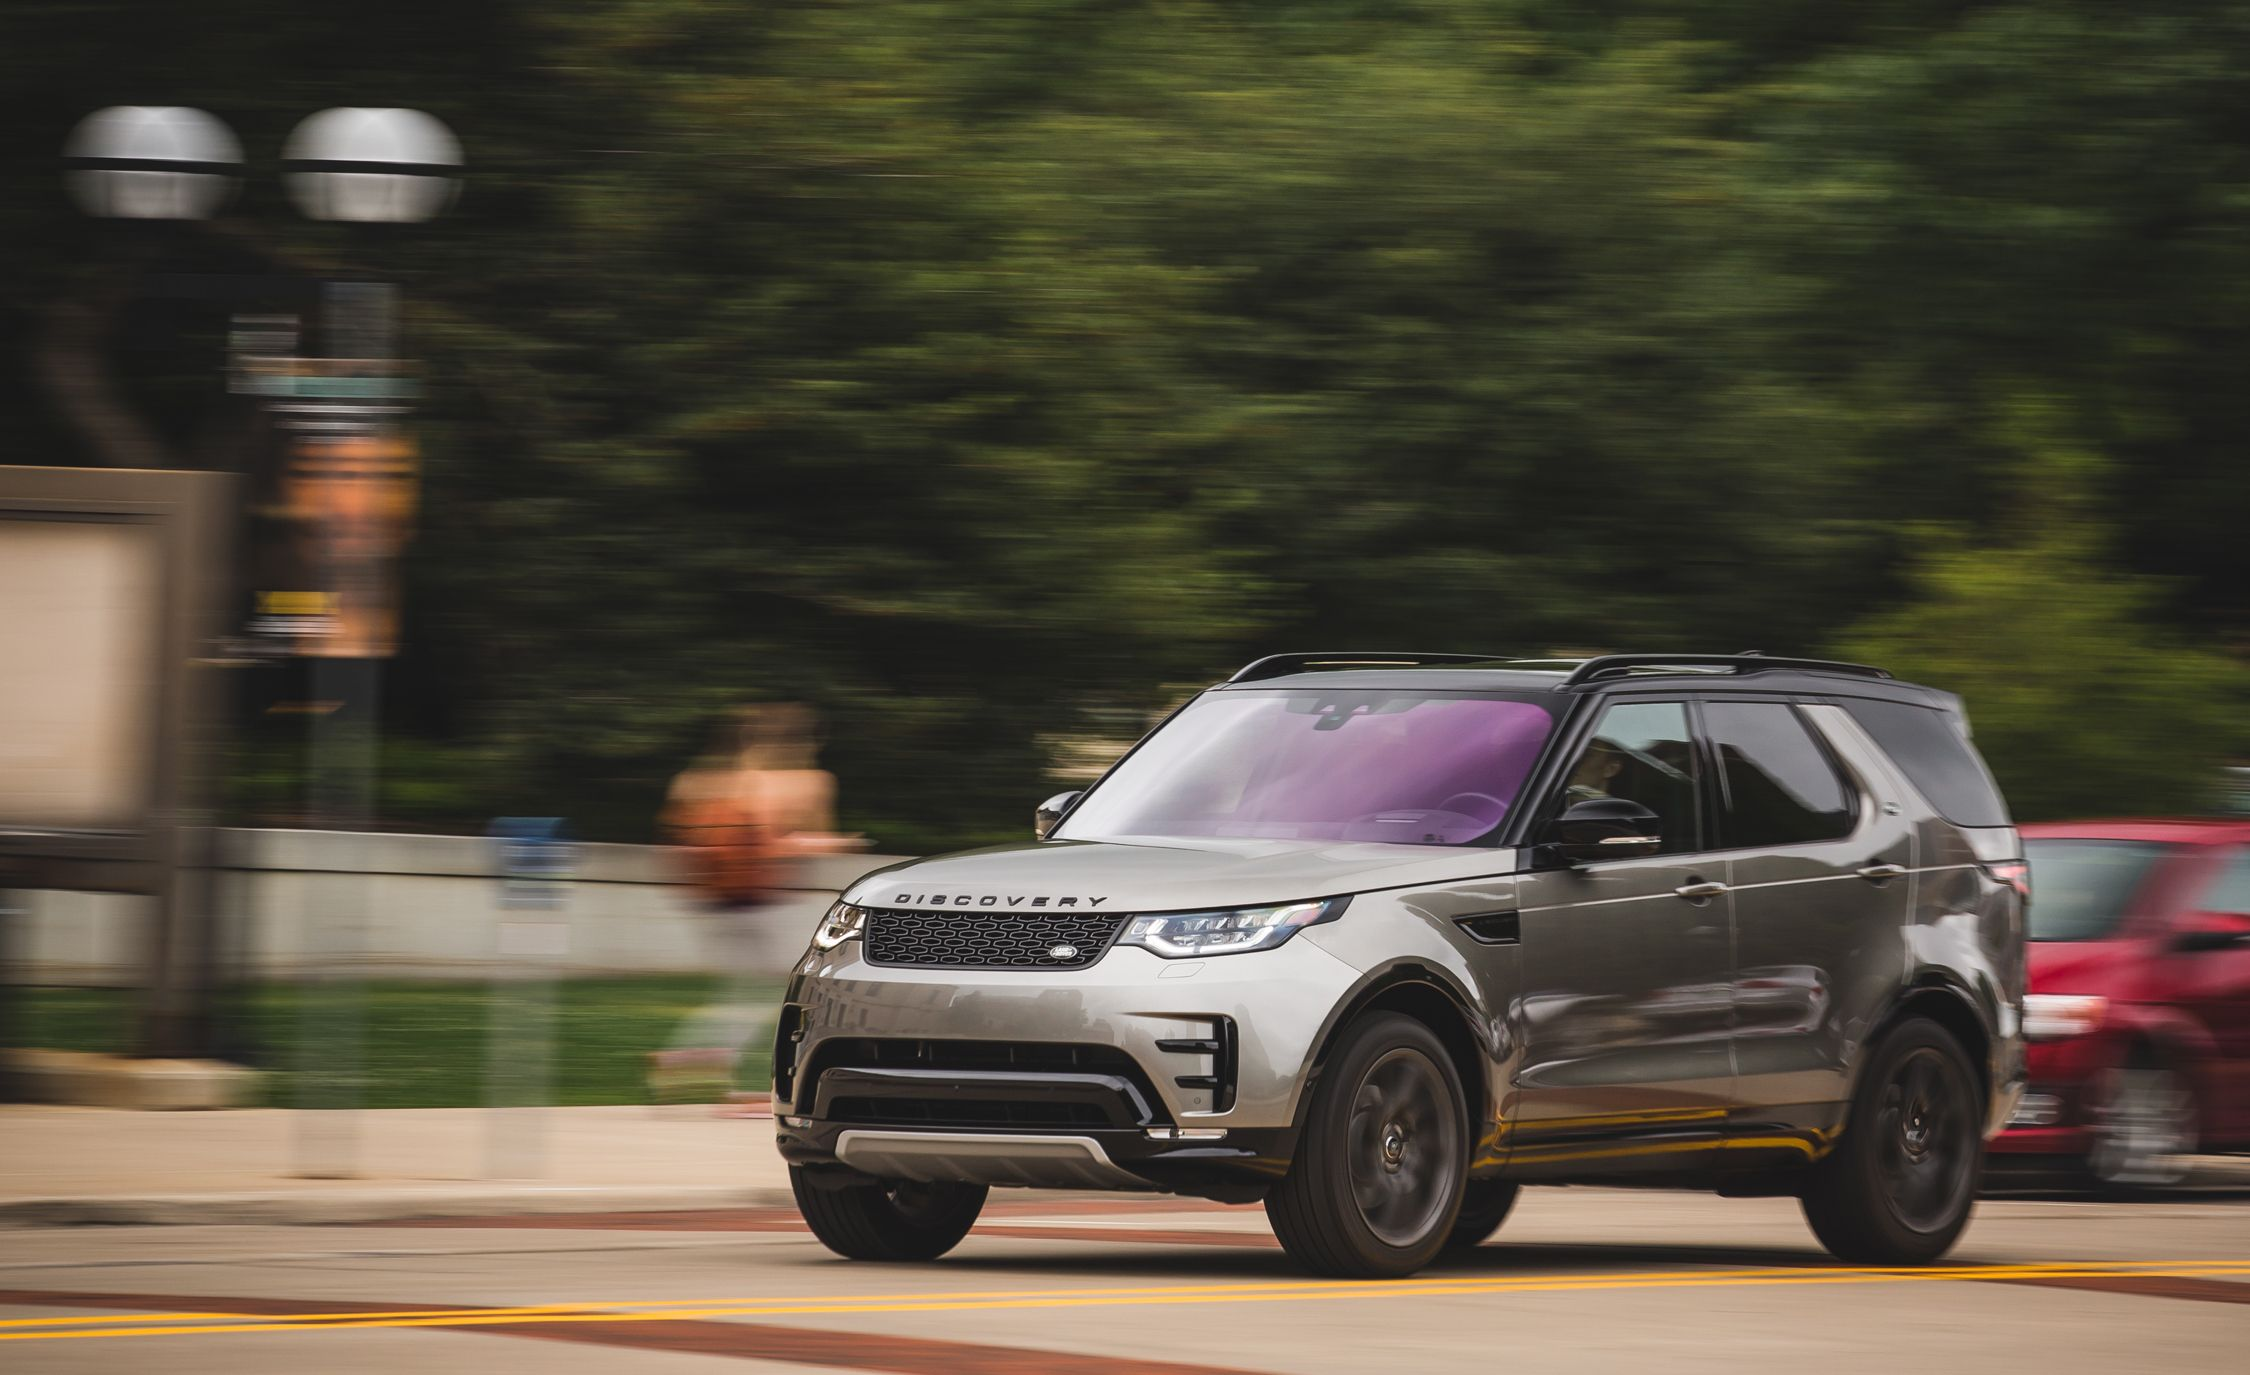 Attirant Land Rover Discovery Reviews | Land Rover Discovery Price, Photos,  And Specs |